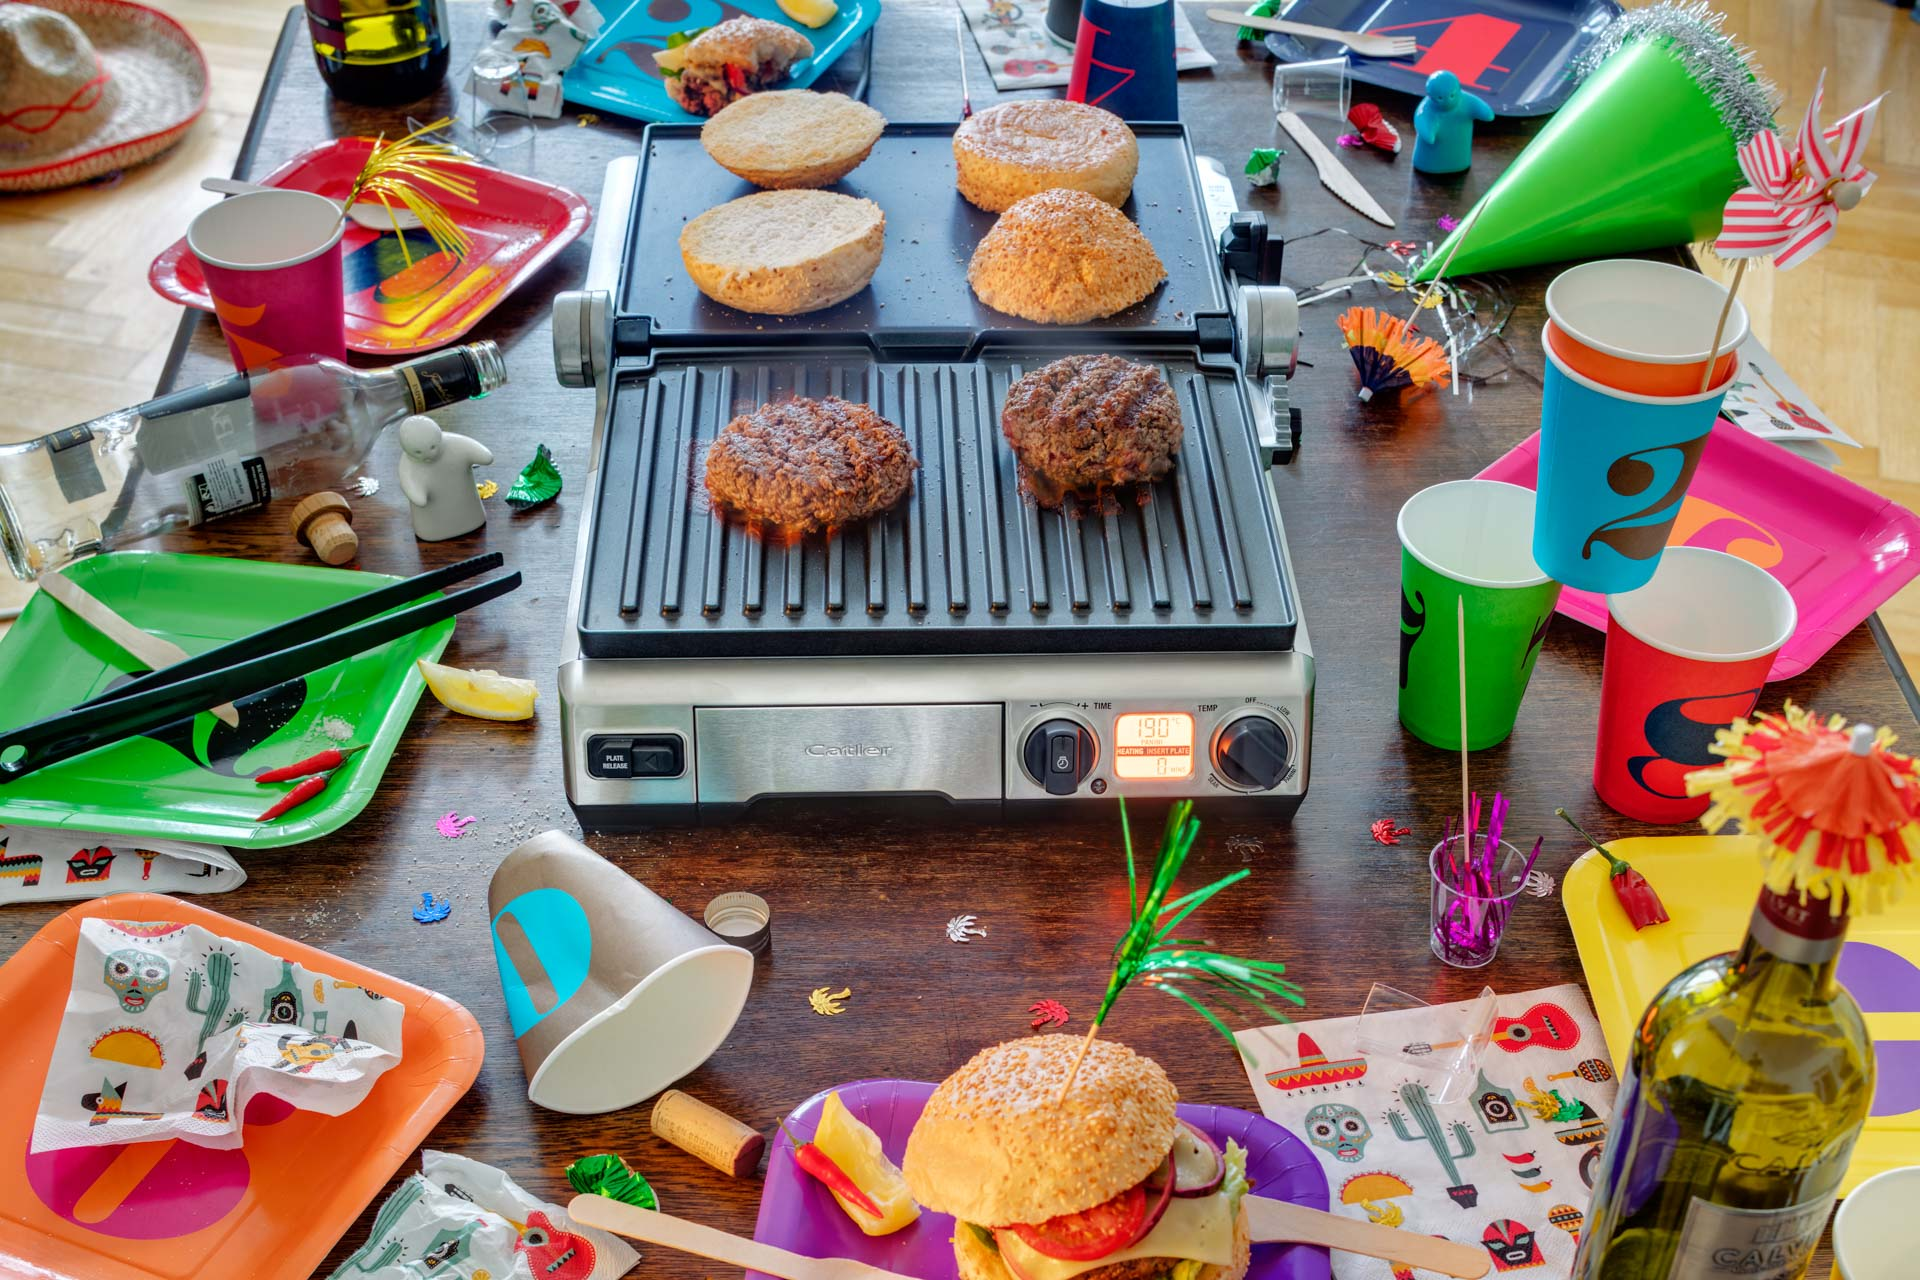 Grill with burger in a party setting